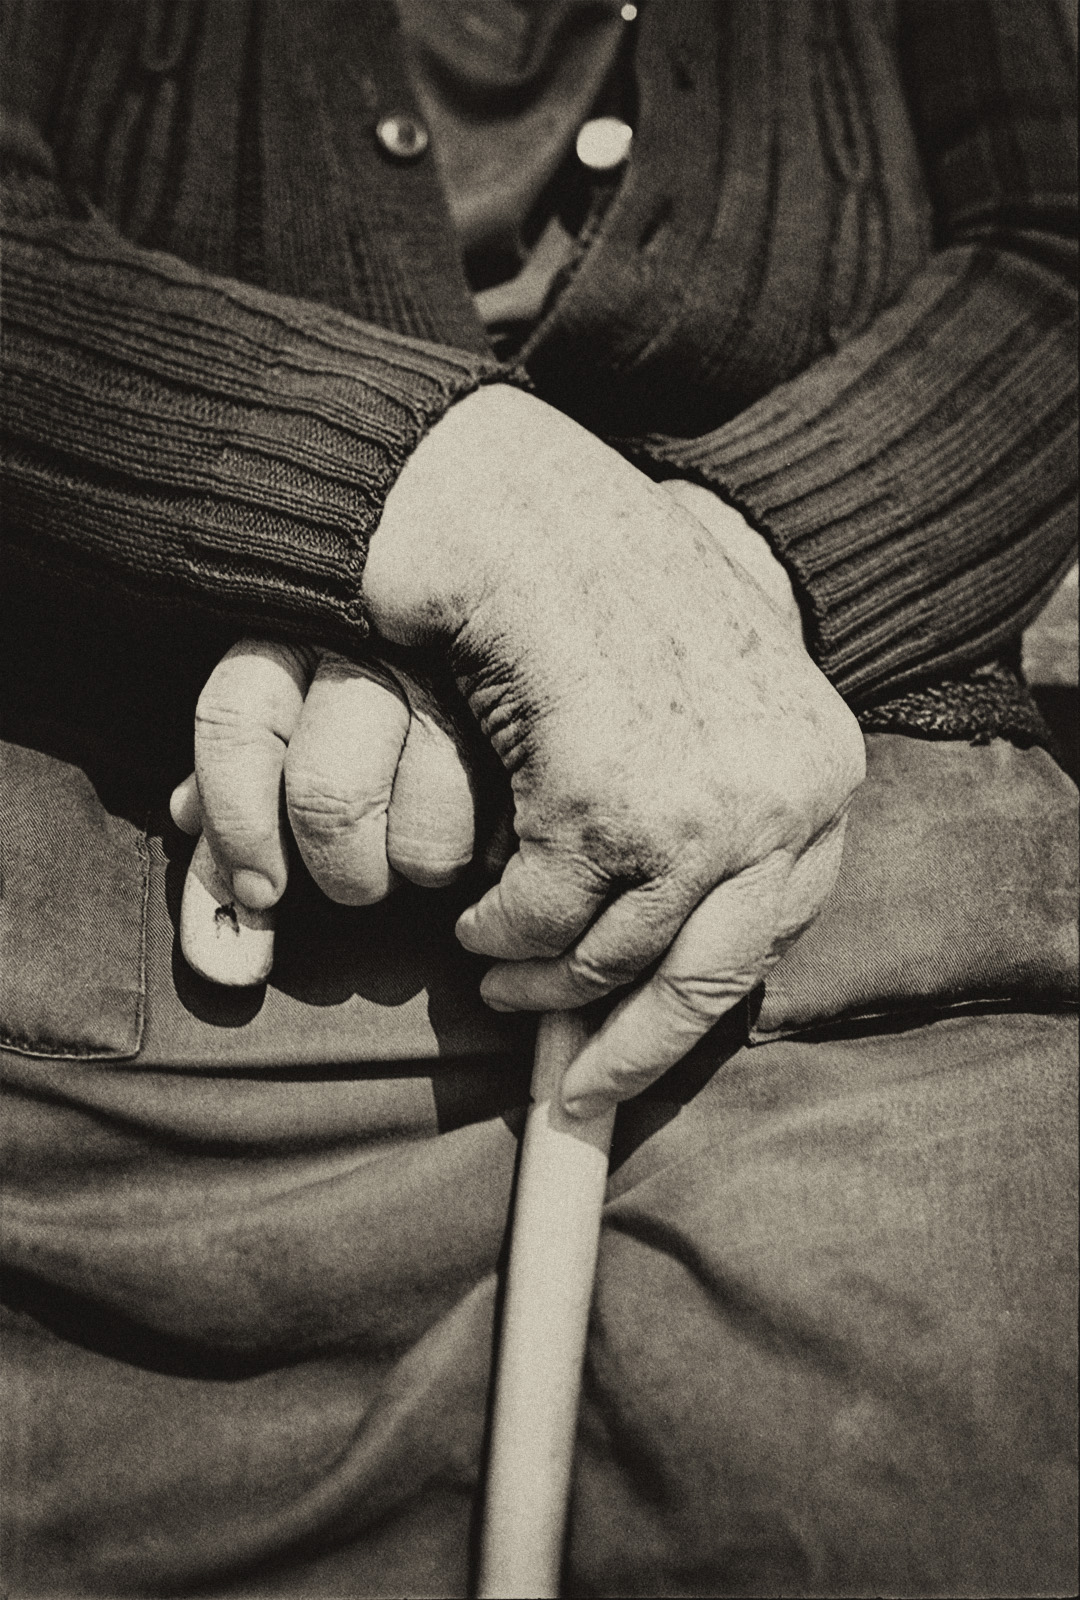 romania_old_hands_LR_